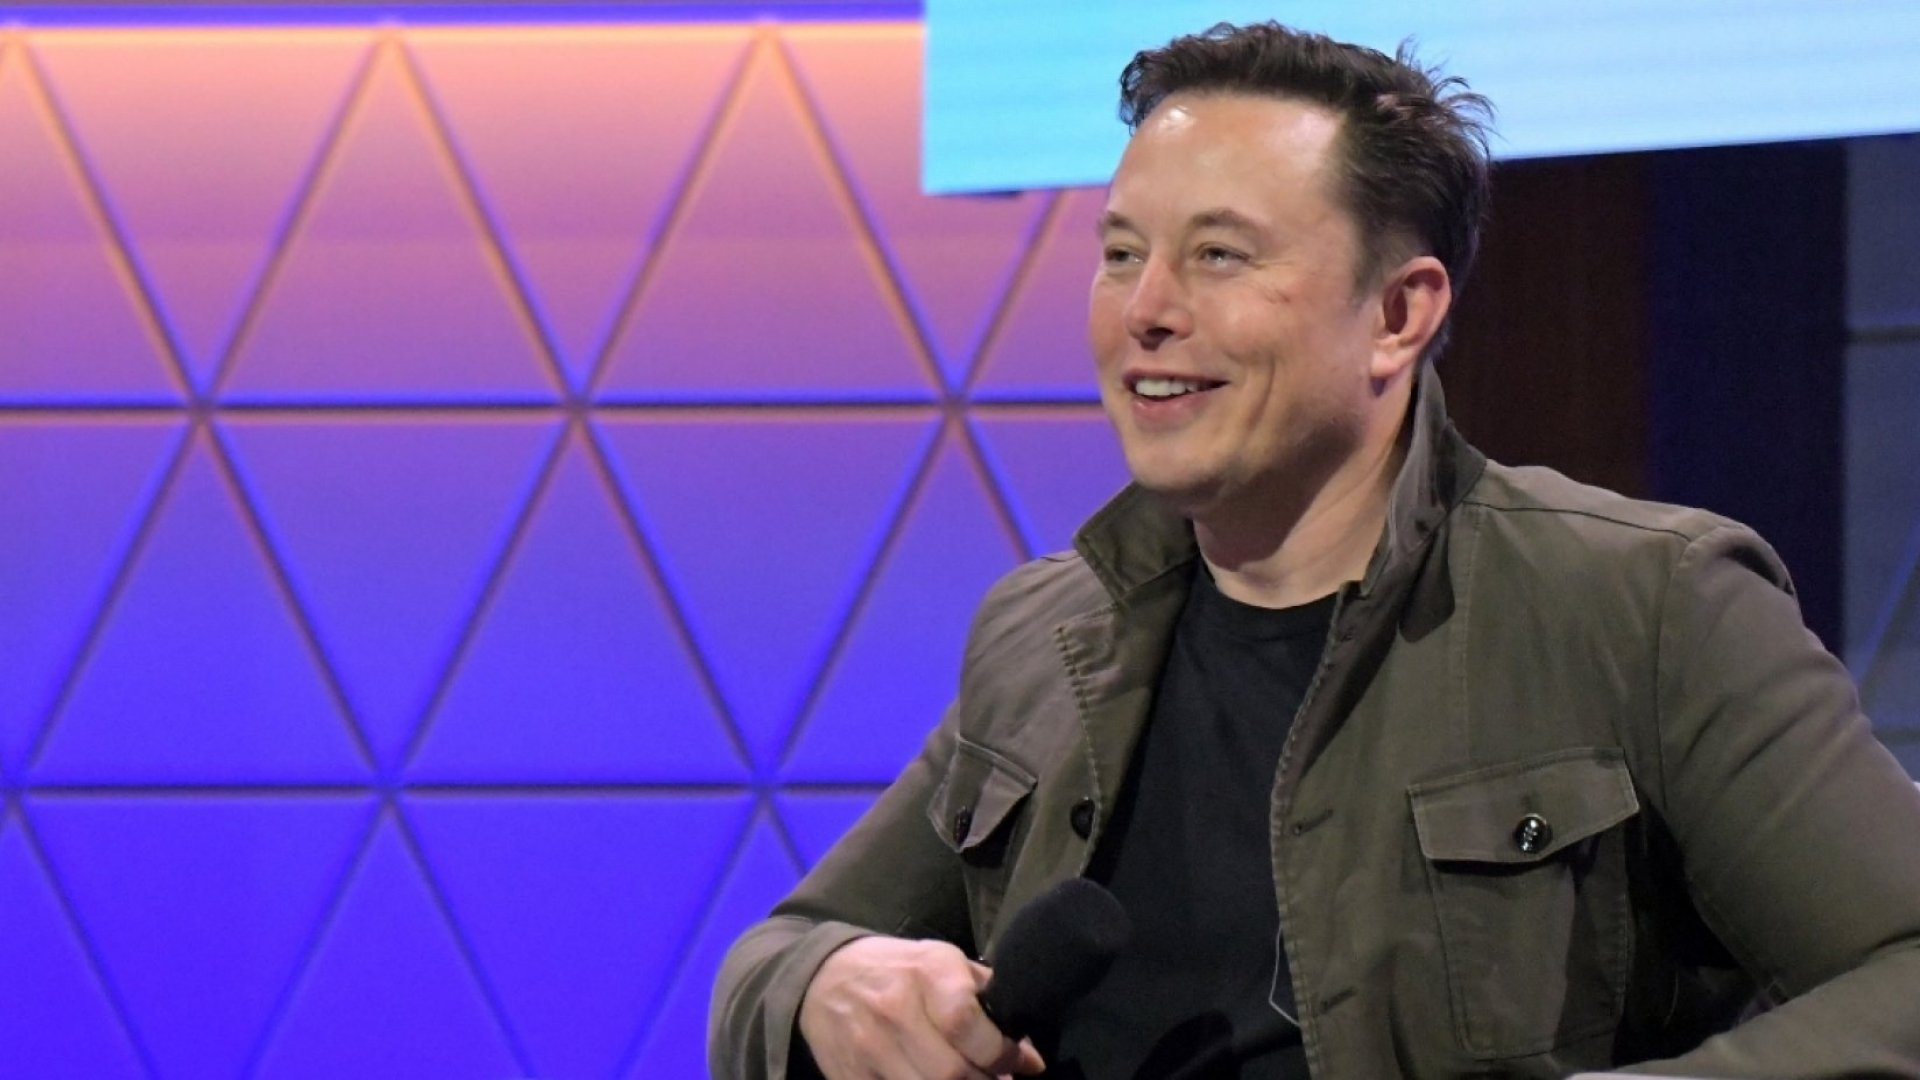 Tesla Just Unveiled a Video Game for Its Cars and It's Proof That Elon Musk Is Smarter Than the Rest of Us